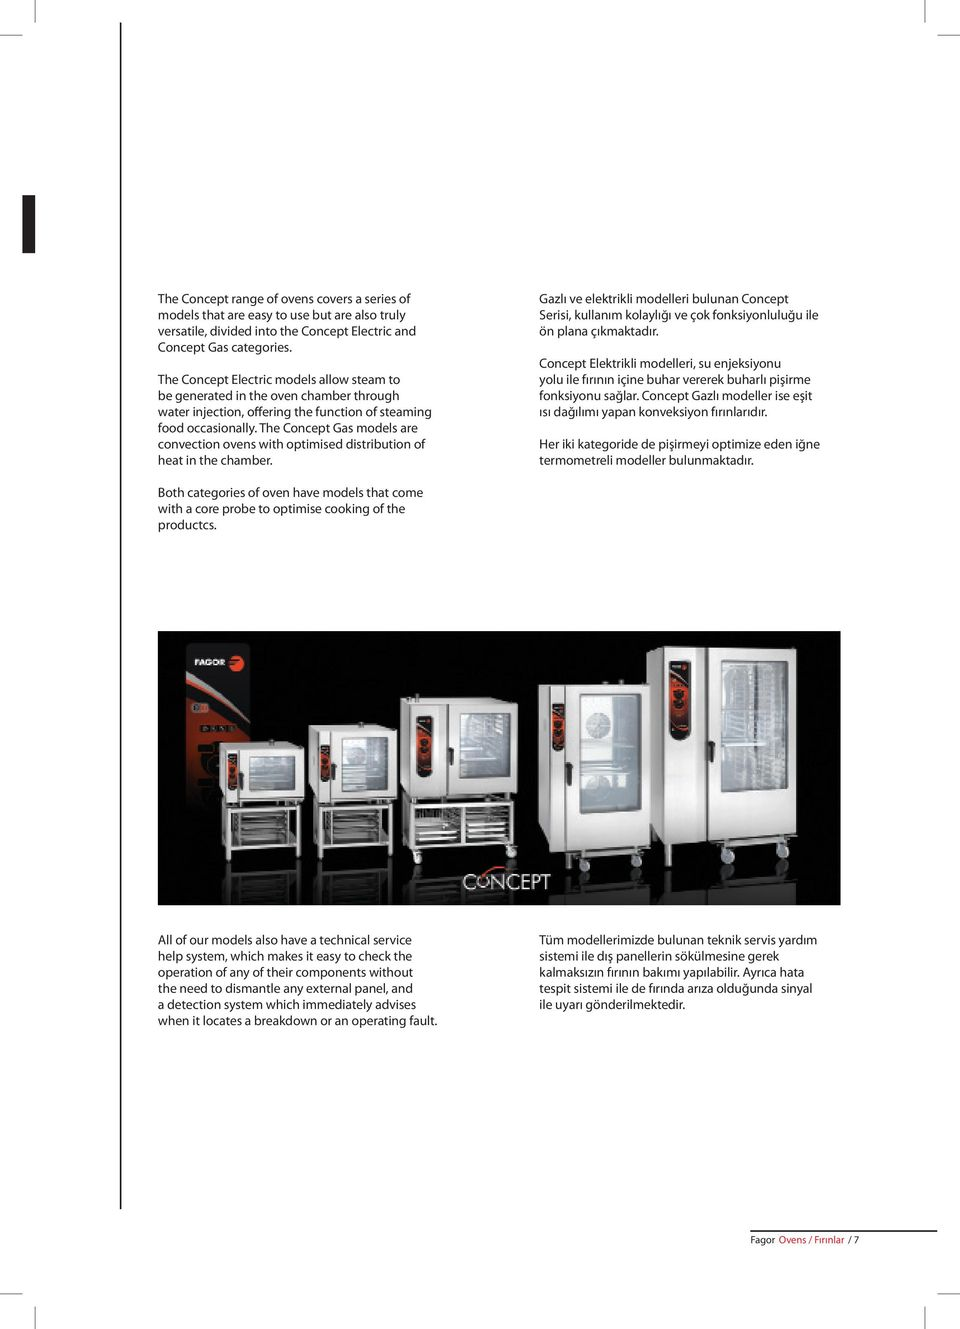 The Concept Gas models are convection ovens with optimised distribution of heat in the chamber.